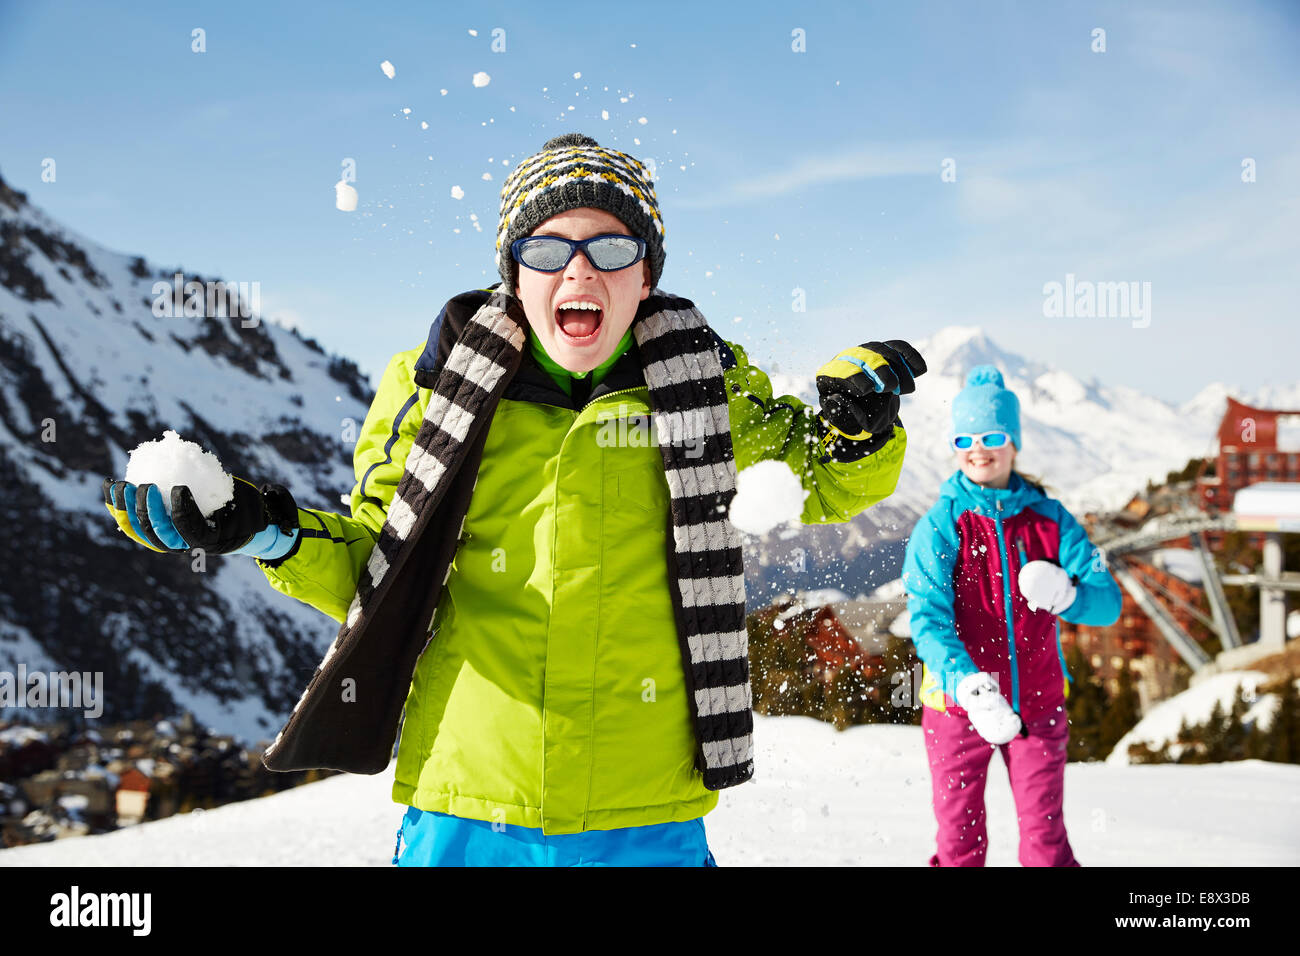 Siblings having snowball fight - Stock Image